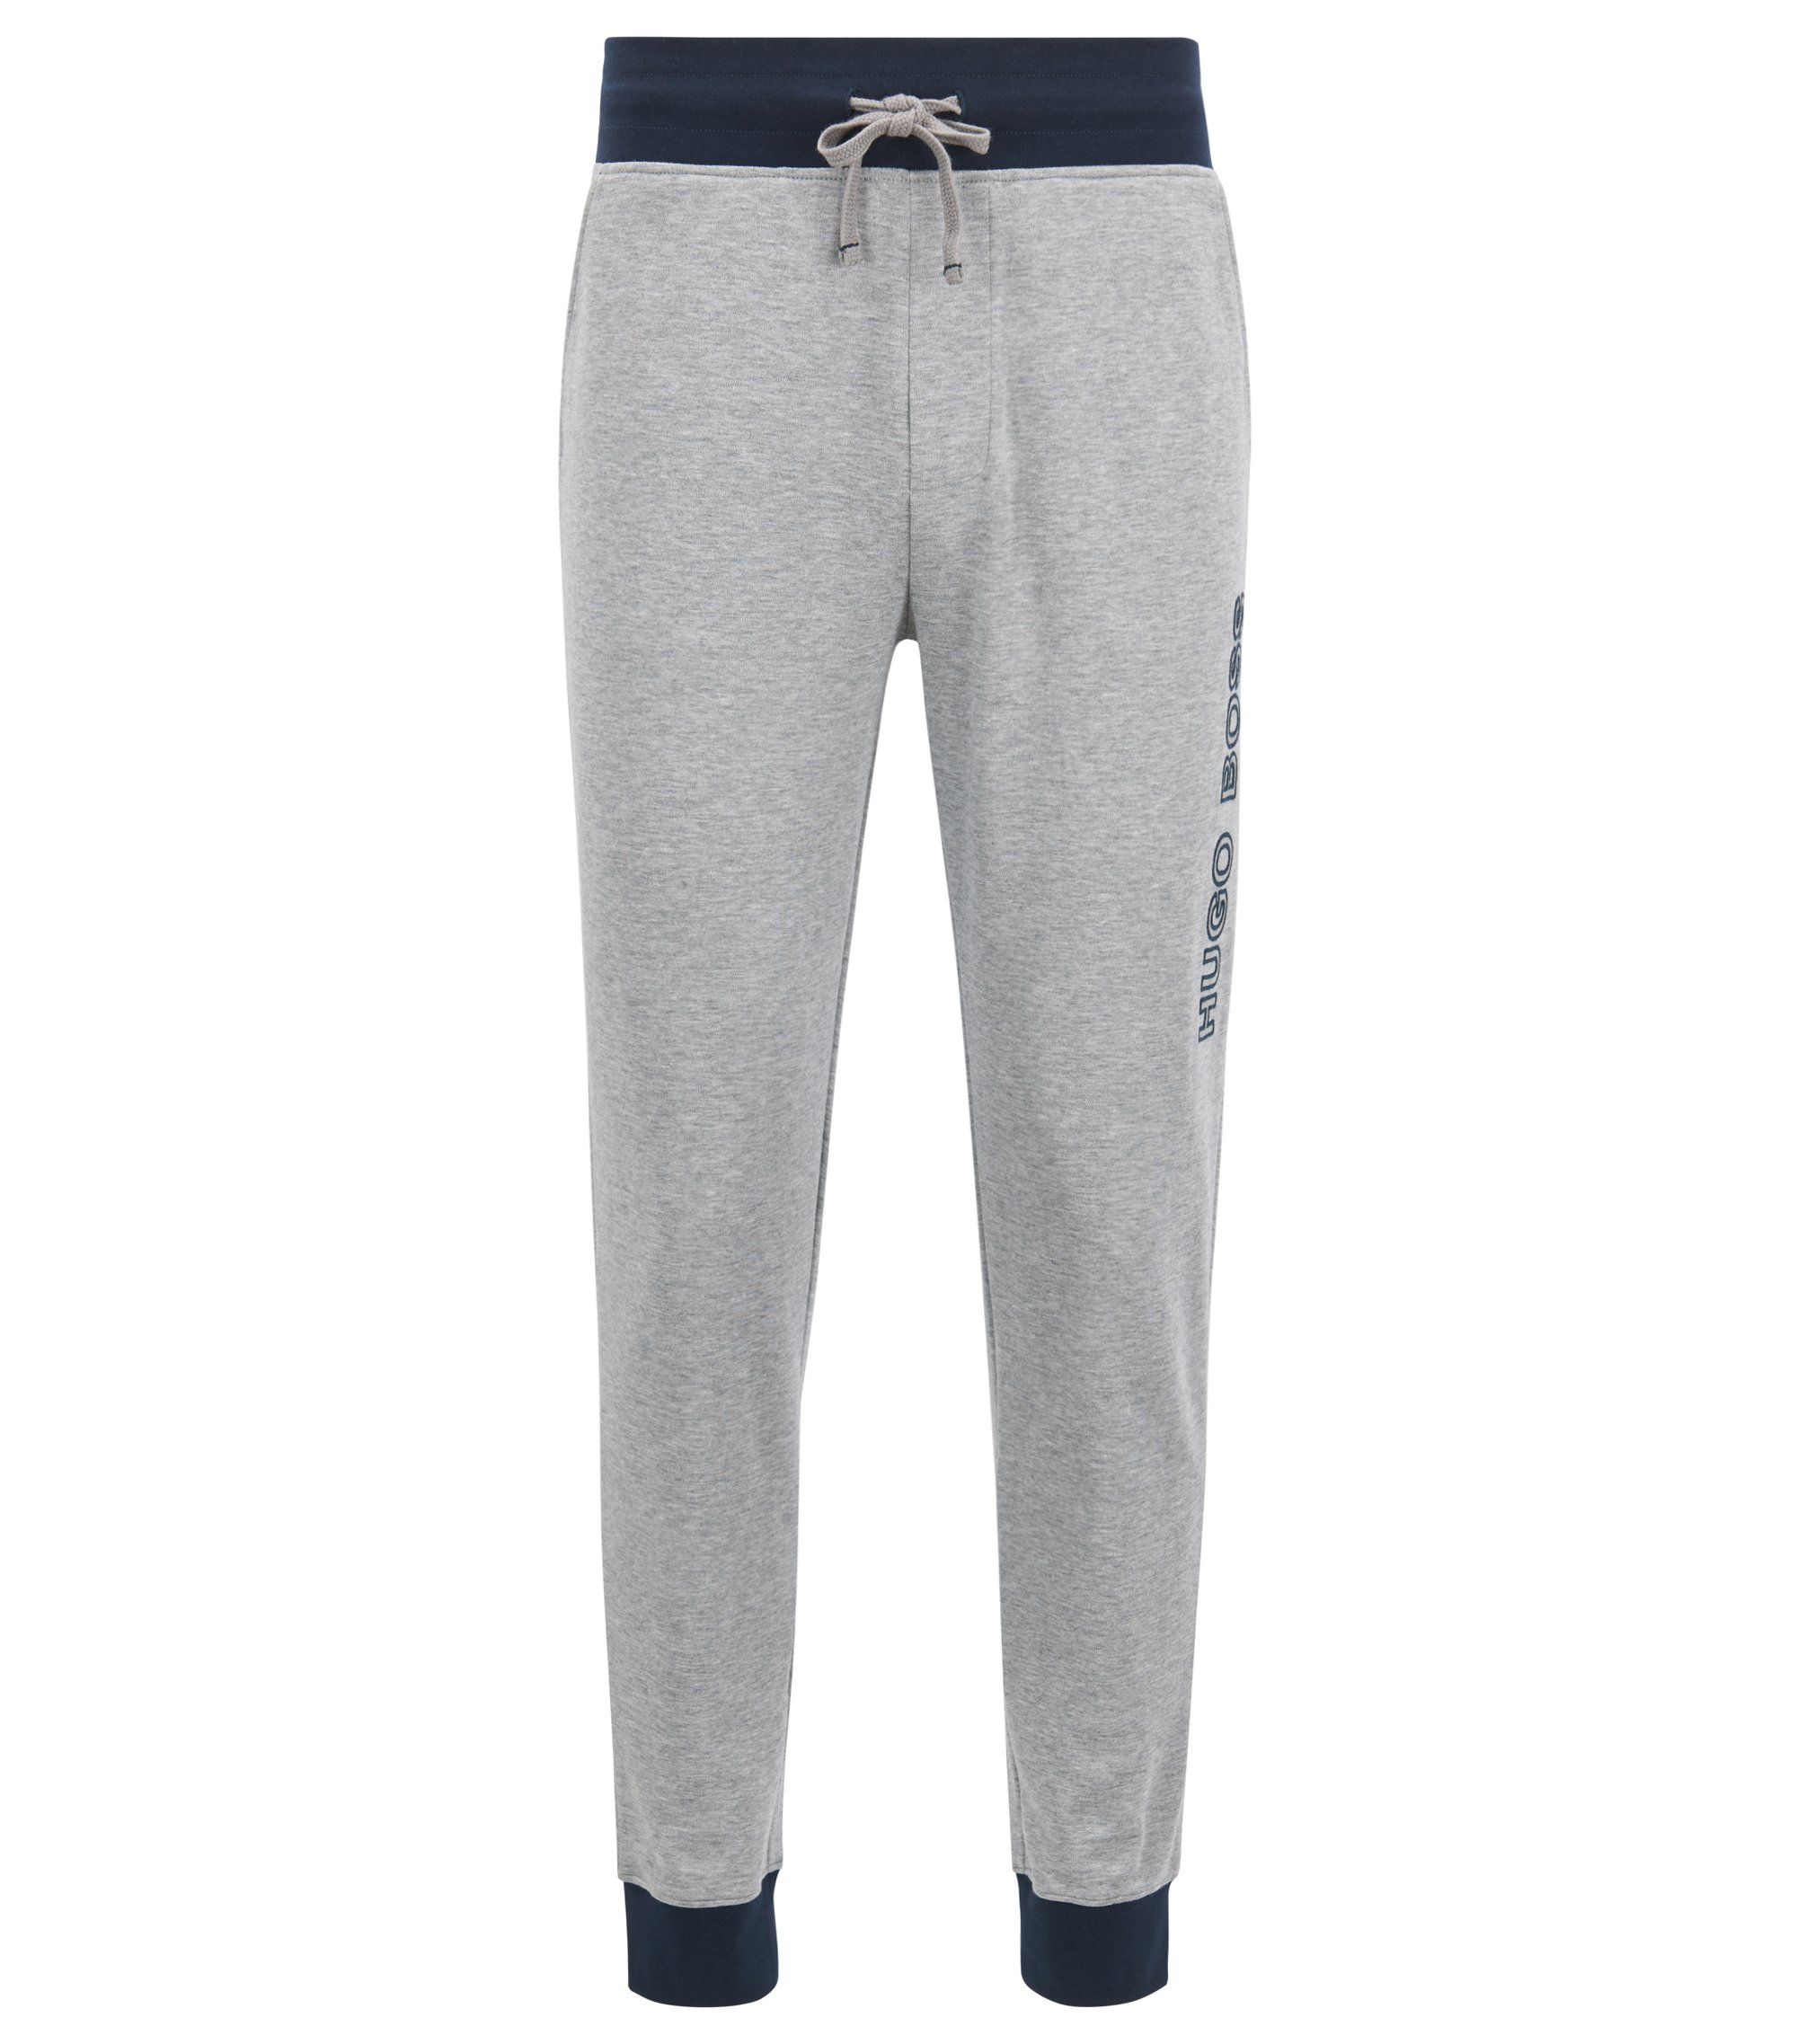 Cuffed jogging bottoms in cotton with contrast details, Grey